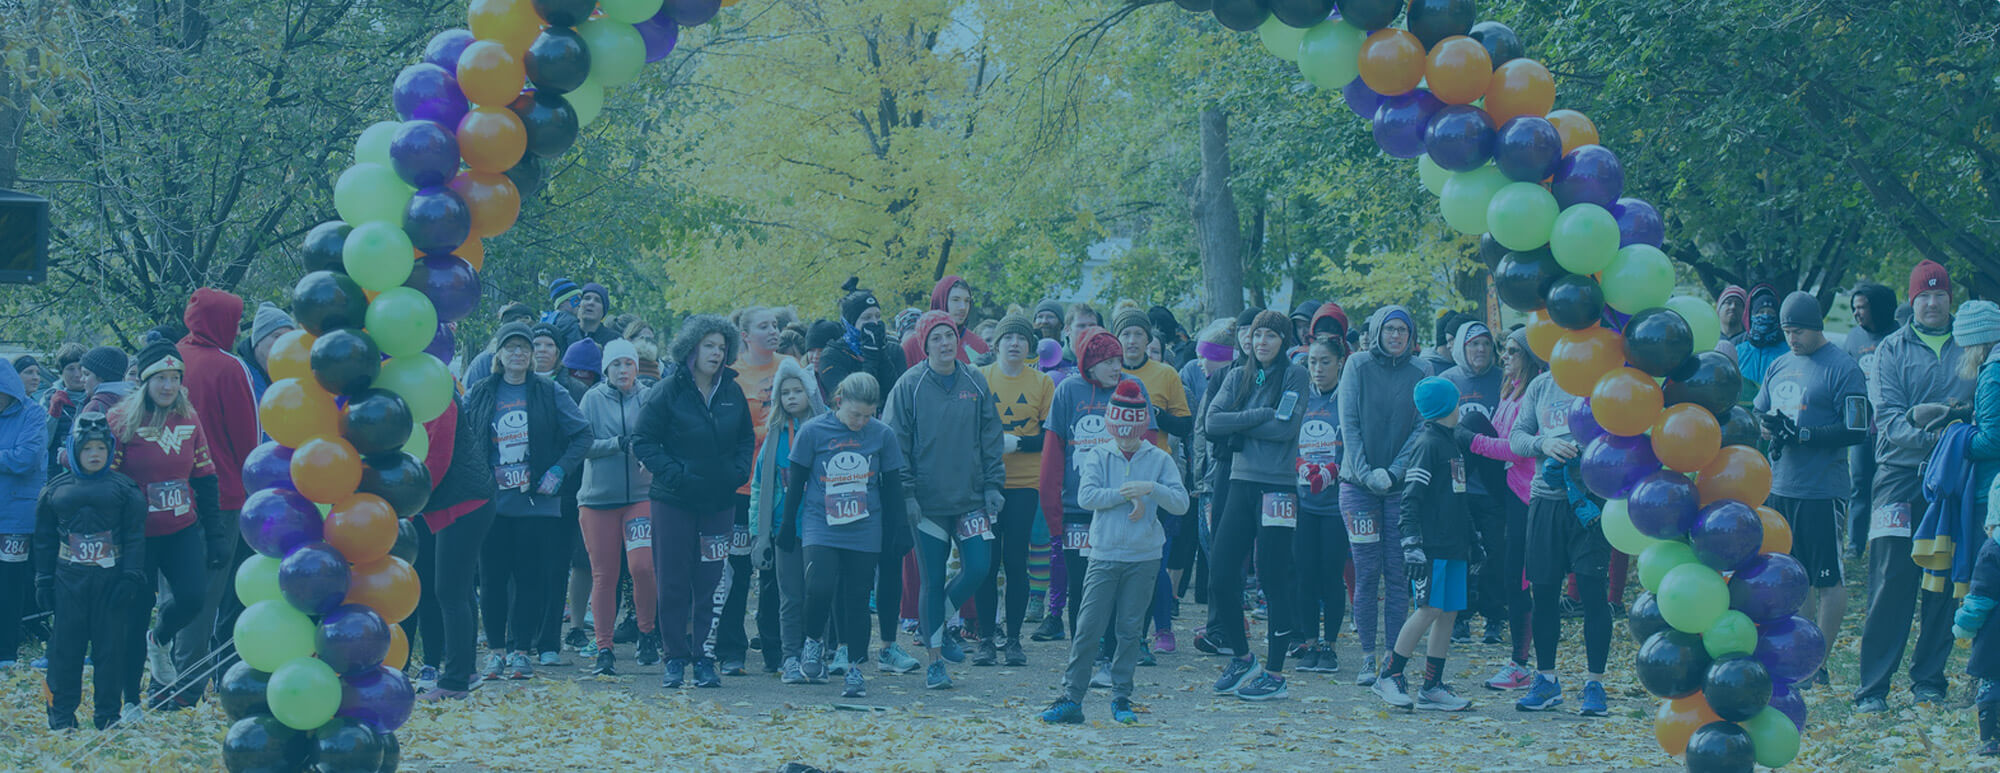 2019 Group Health Cooperative of Eau Claire Haunted Hustle Race